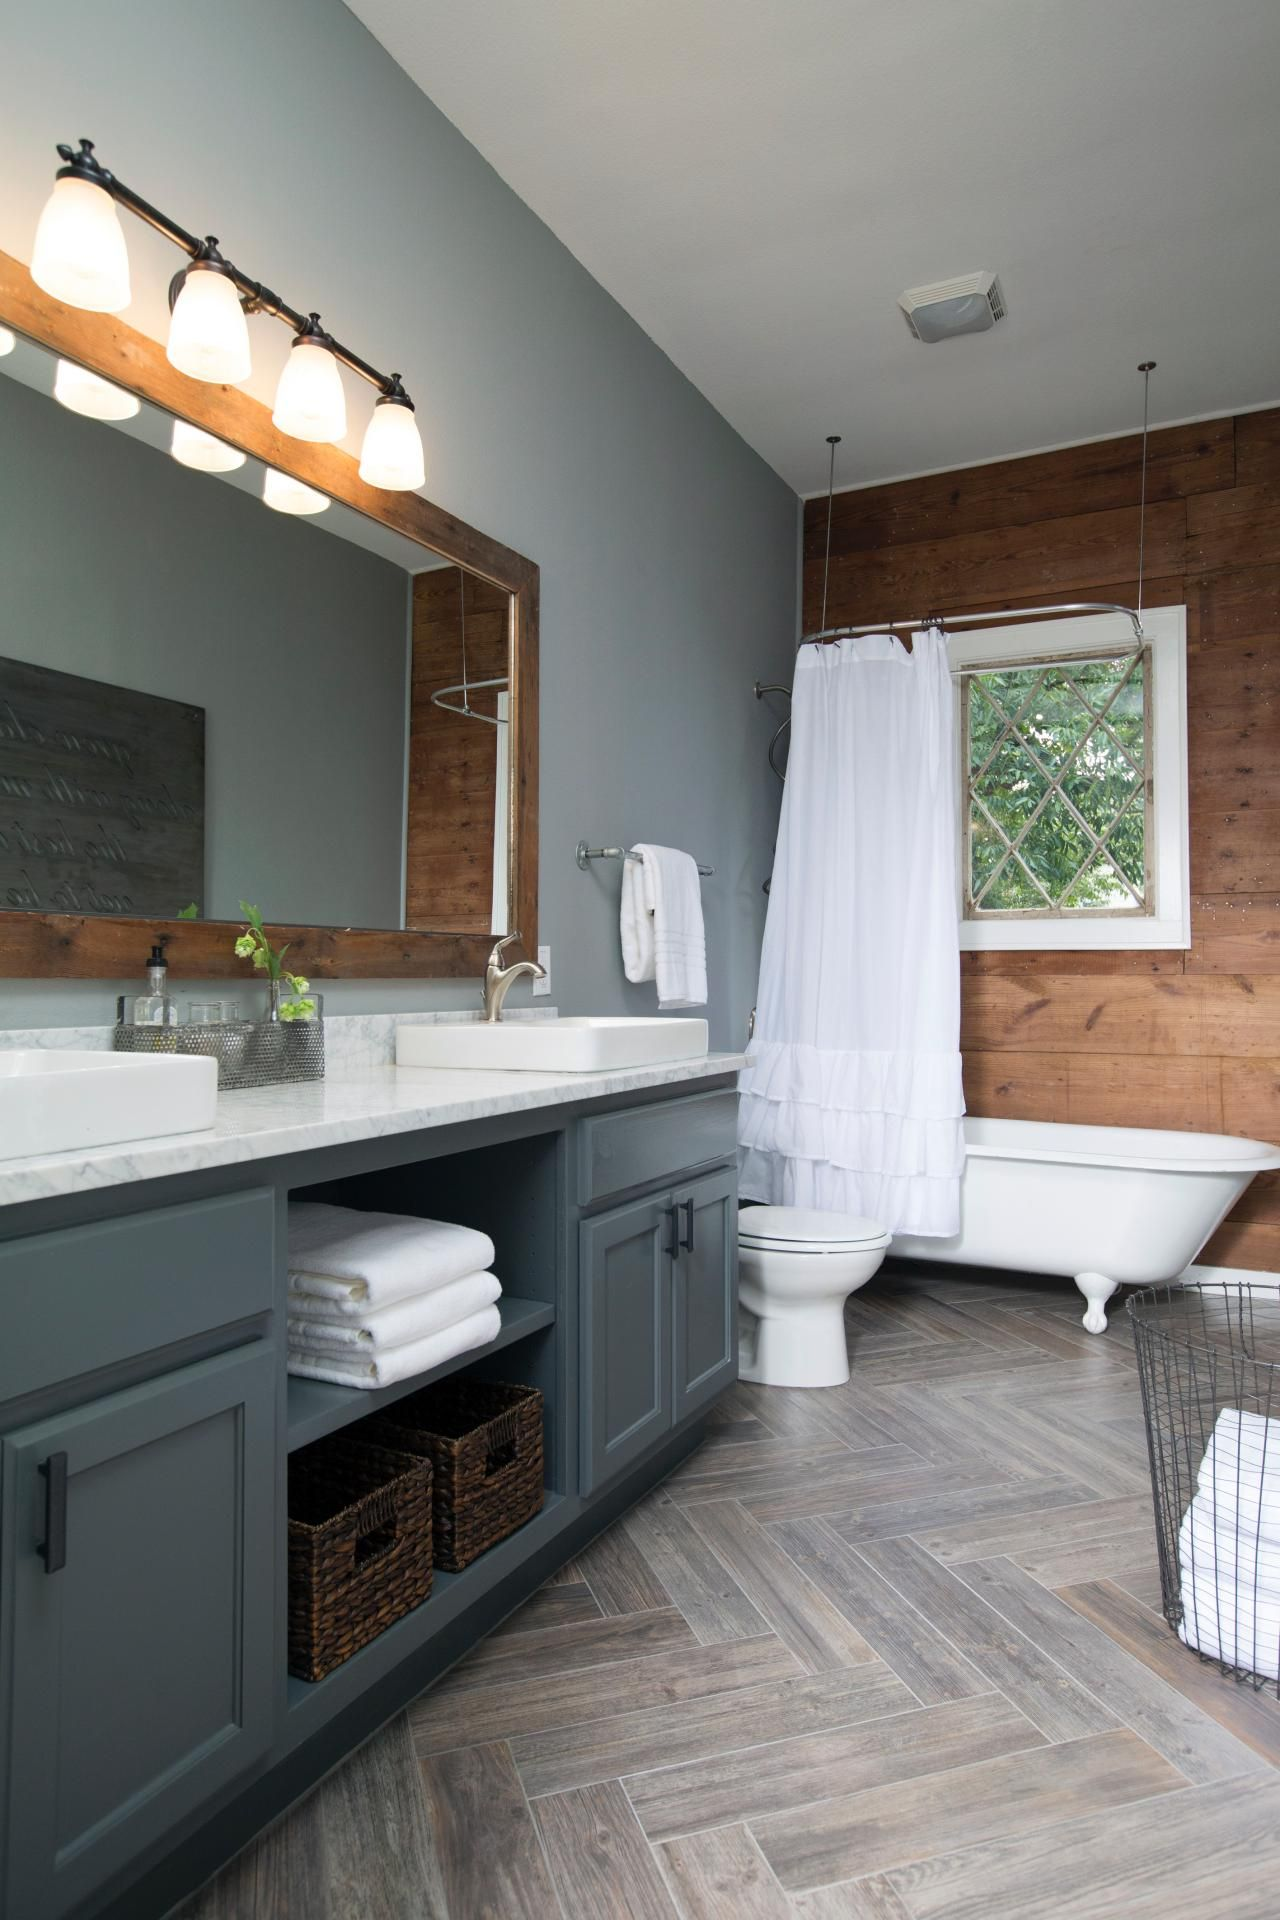 hgtv/fixer upper images - Yahoo Search Results | Ranch | Pinterest ...